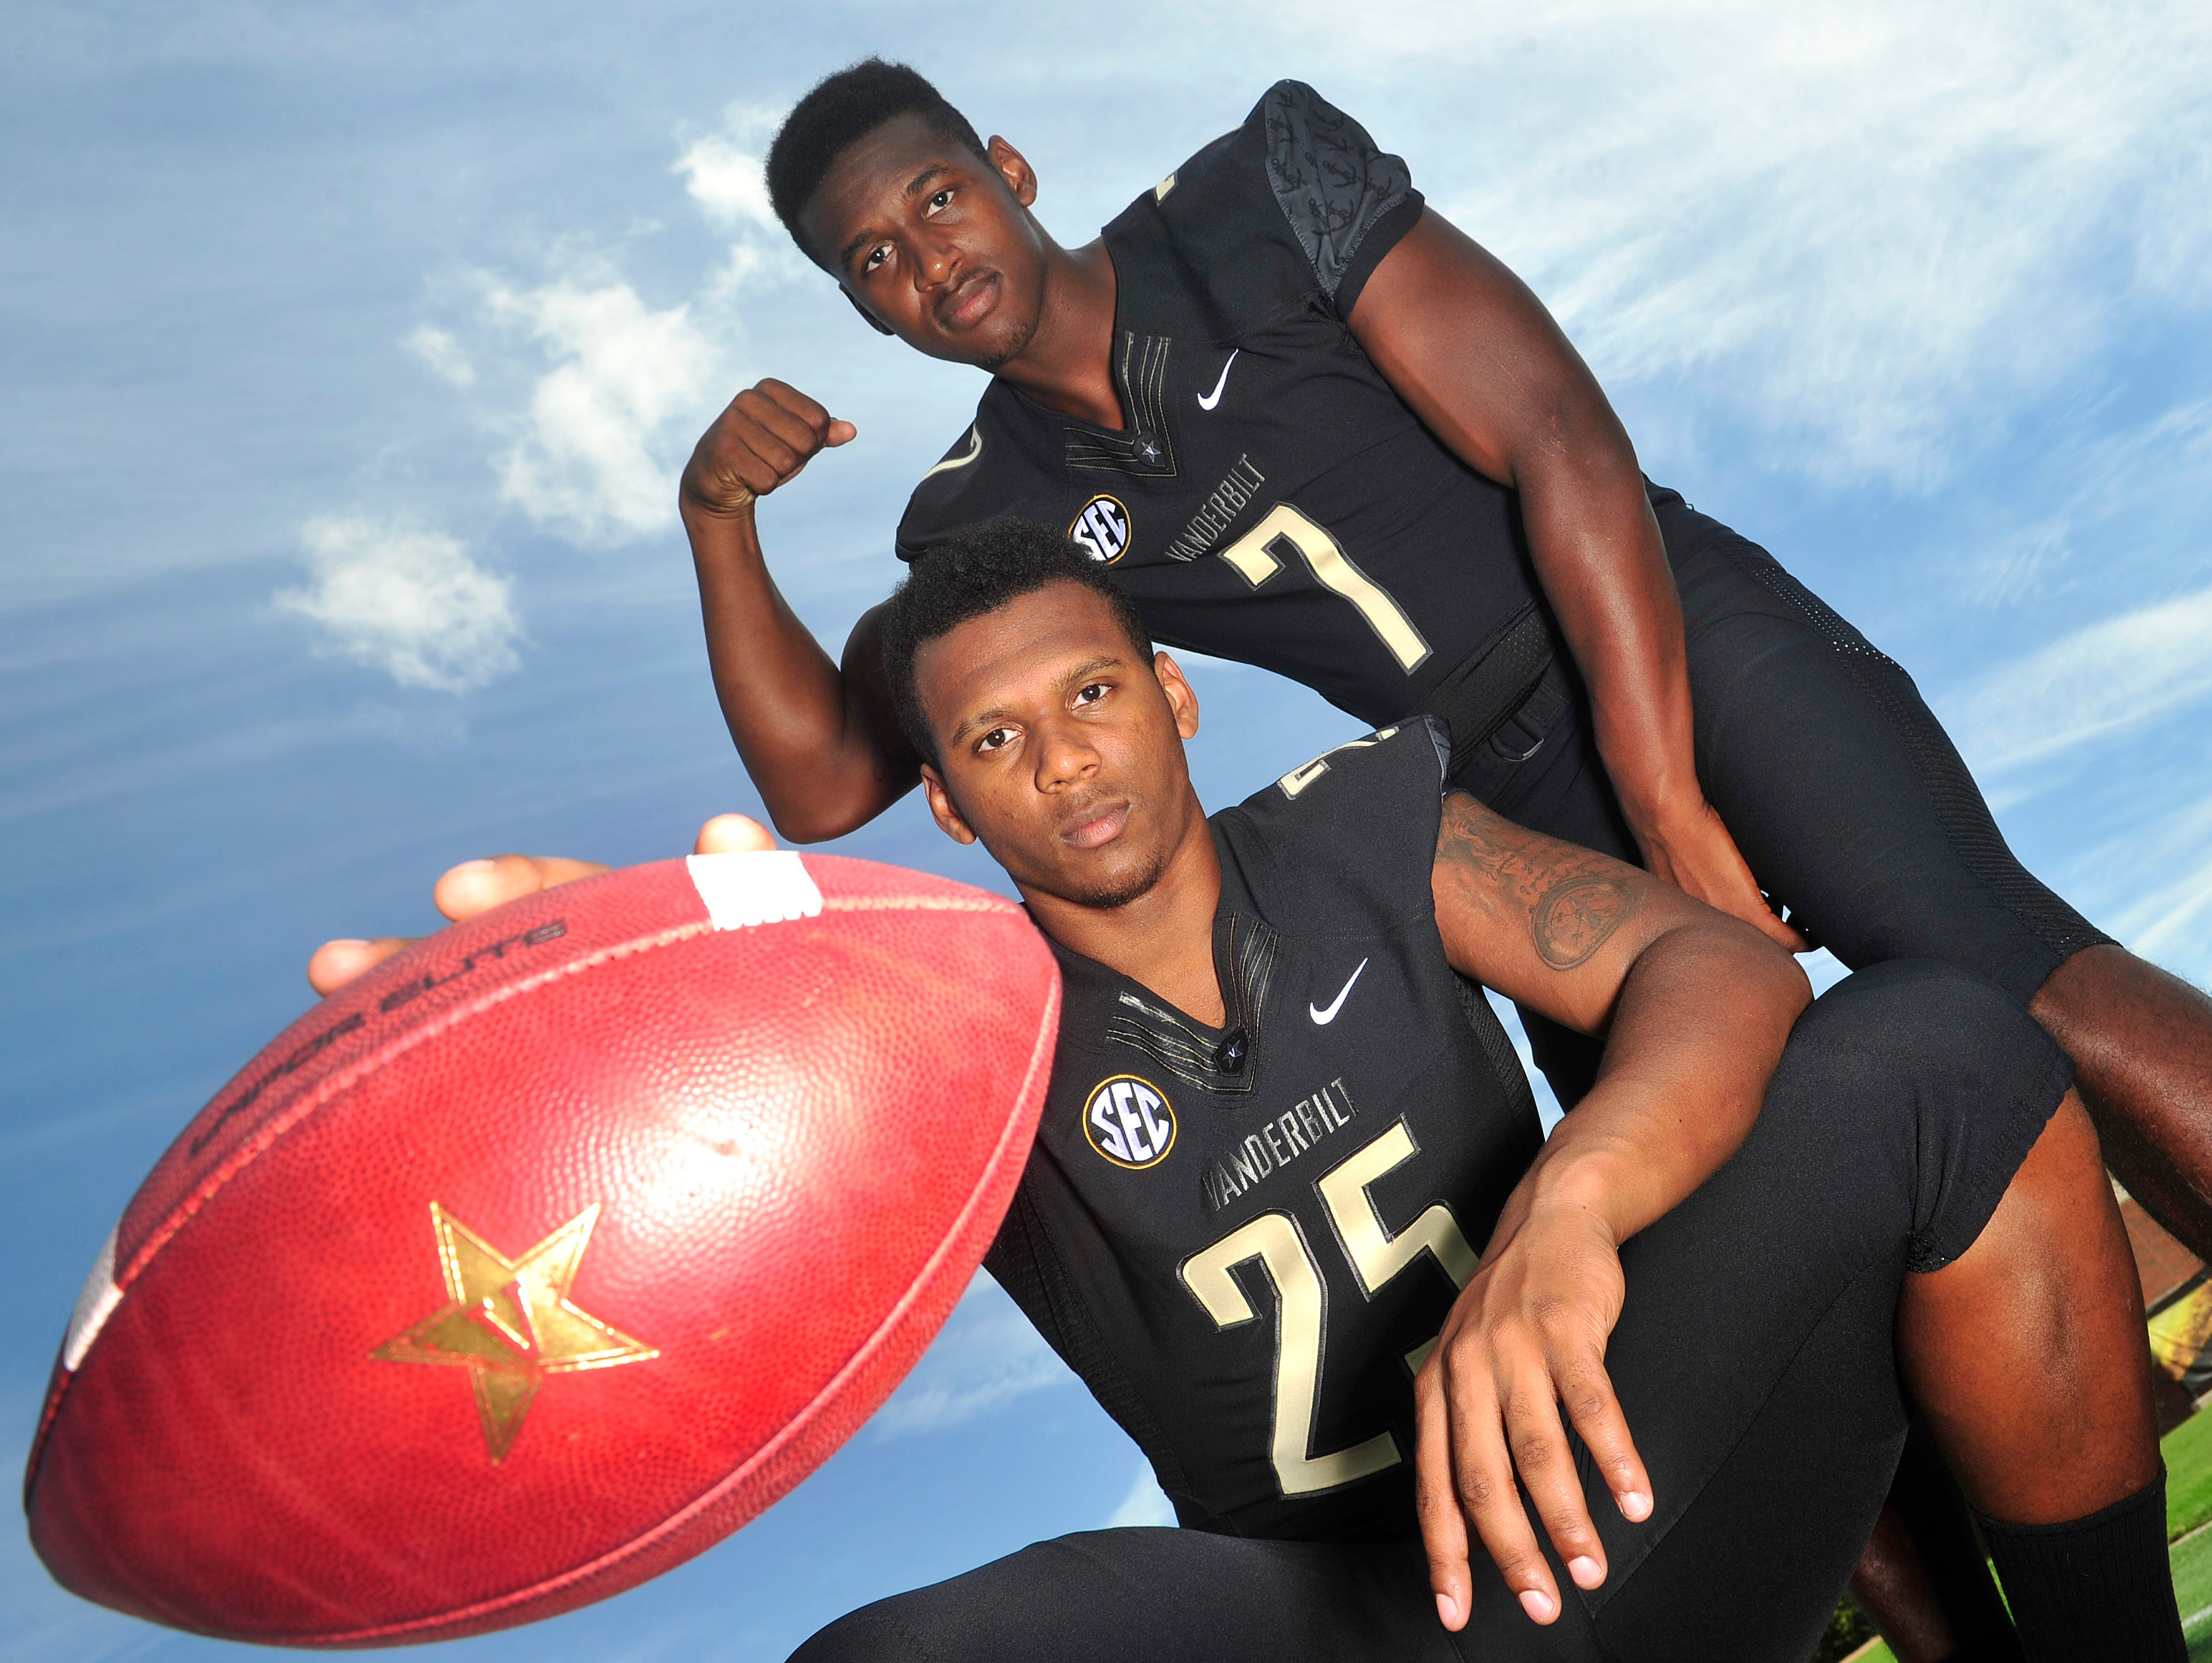 Brothers and Vanderbilt football players Josh Smith, left, and Emmanuel Smith are excited to be on the same team.